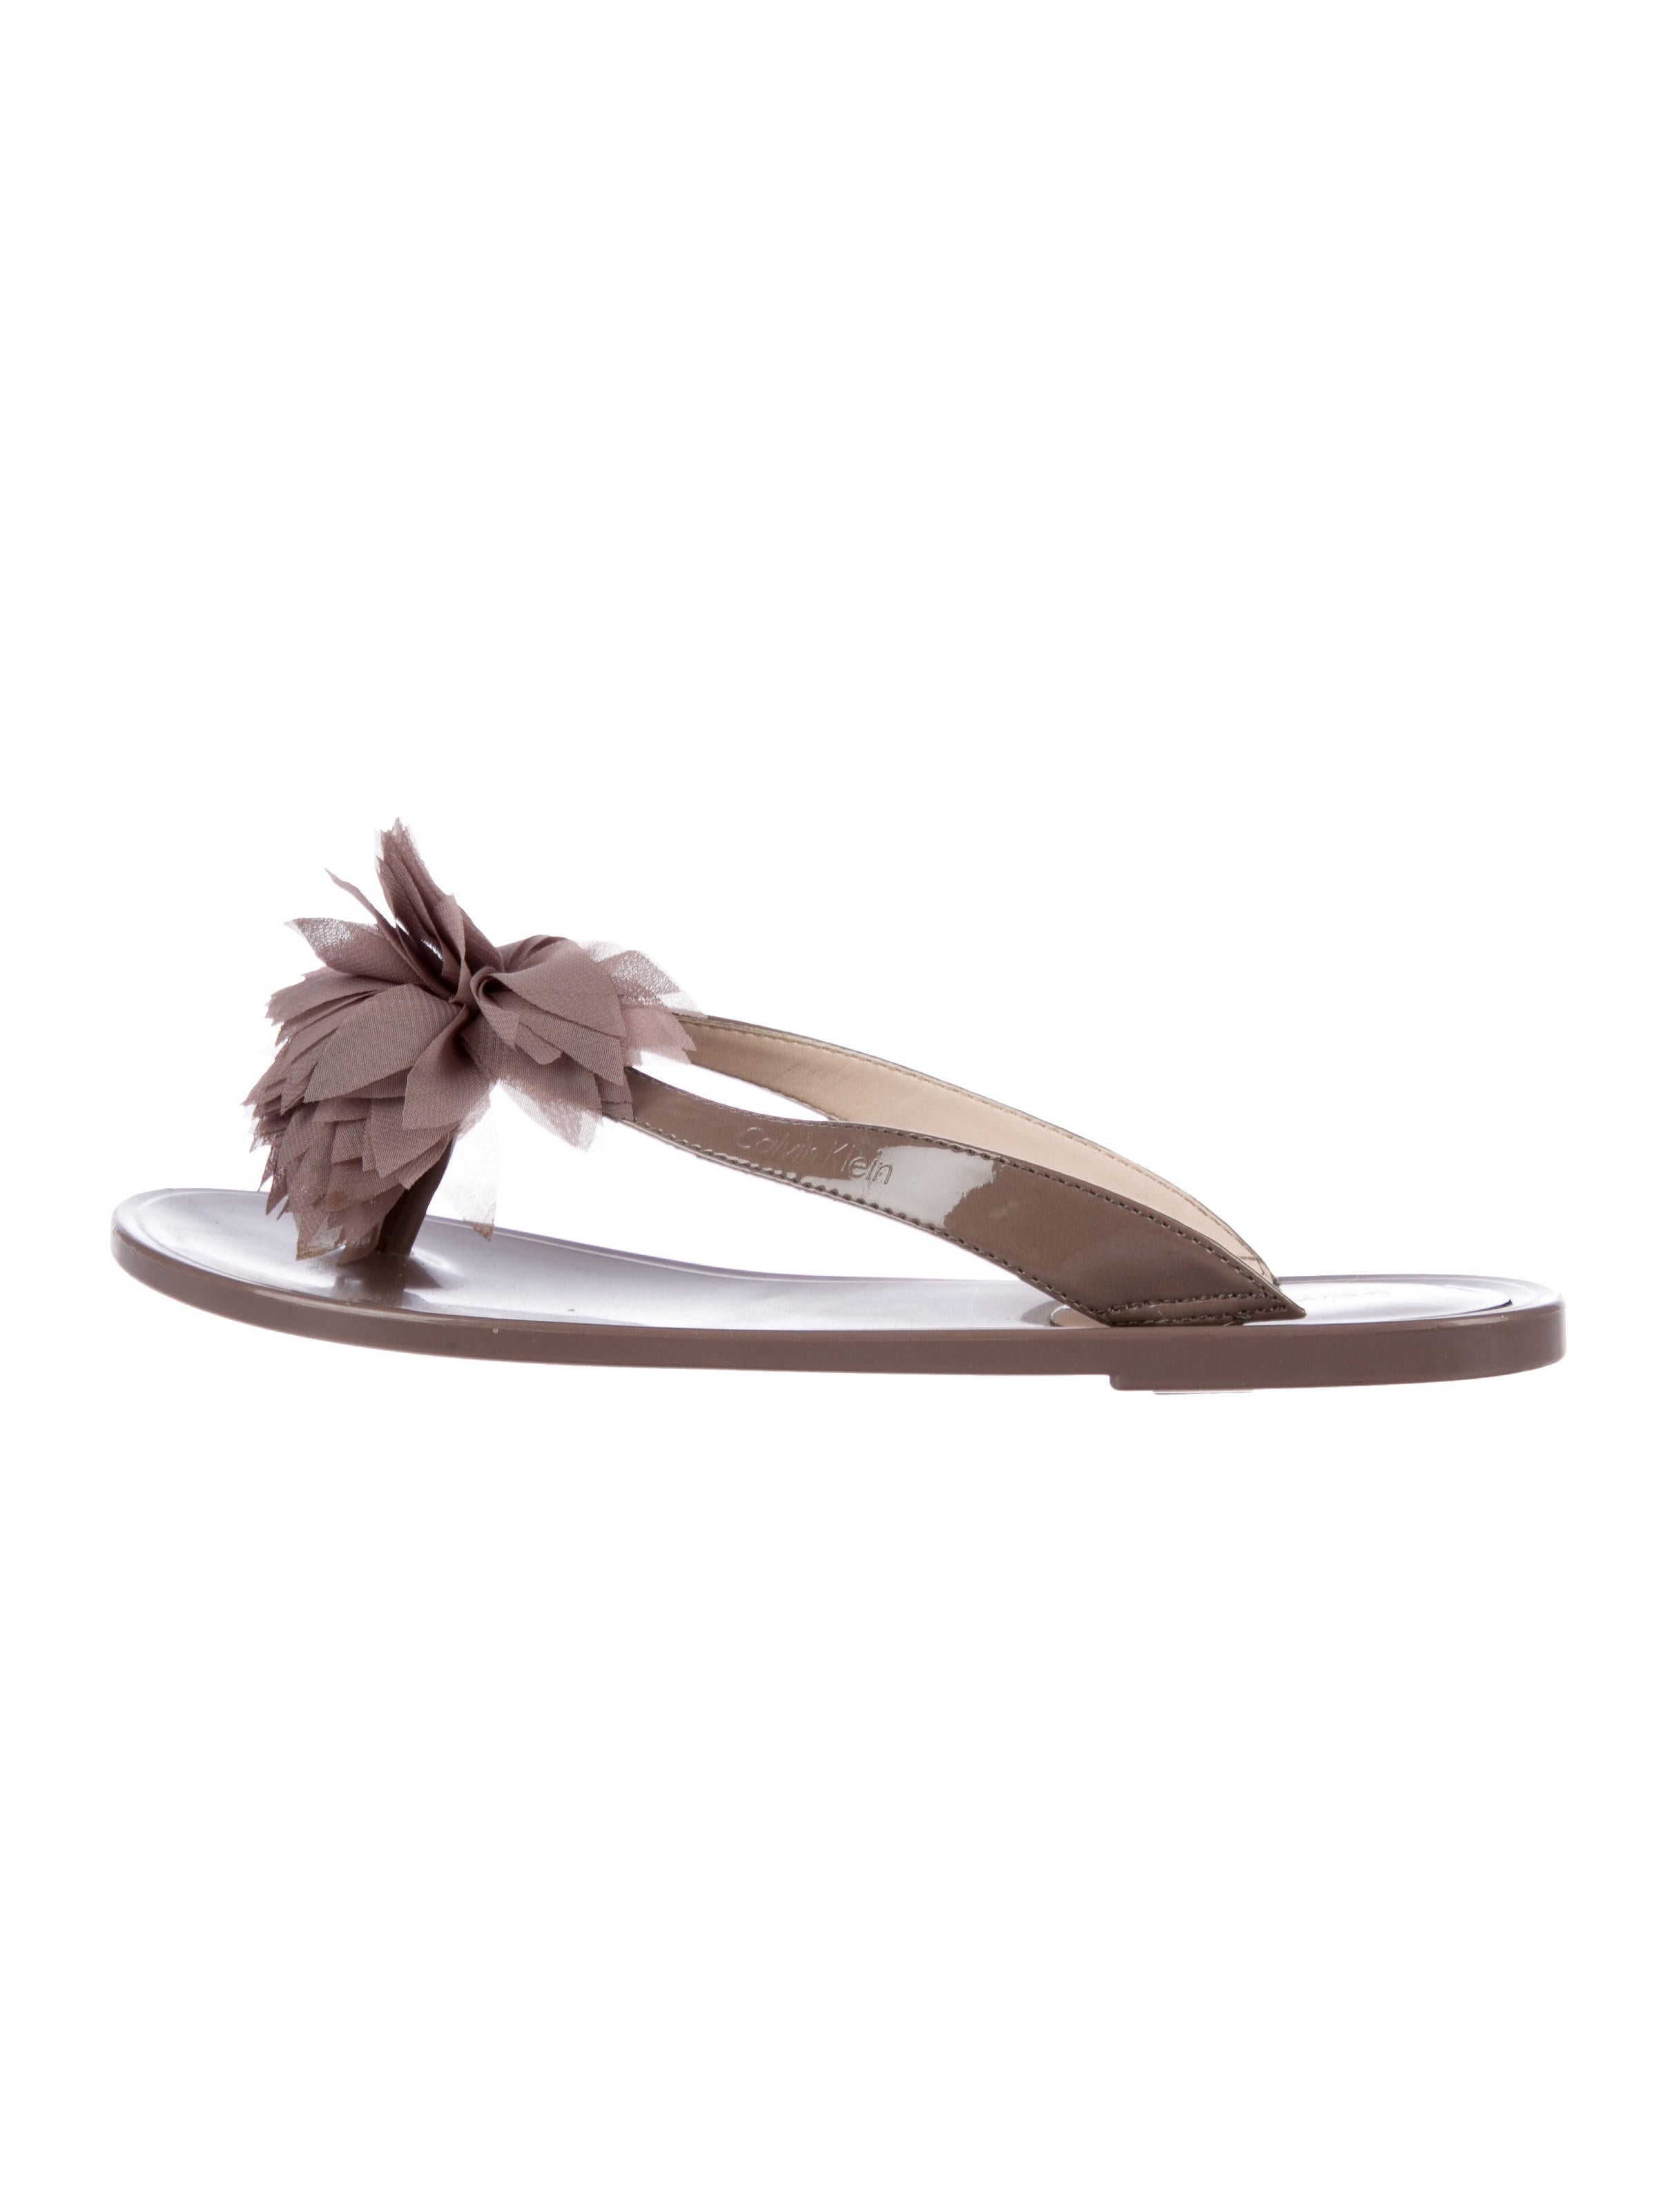 Manchester Calvin Klein Jade Thong Sandals outlet websites cheap sale best store to get buy cheap pay with paypal outlet with paypal ETfPJM9